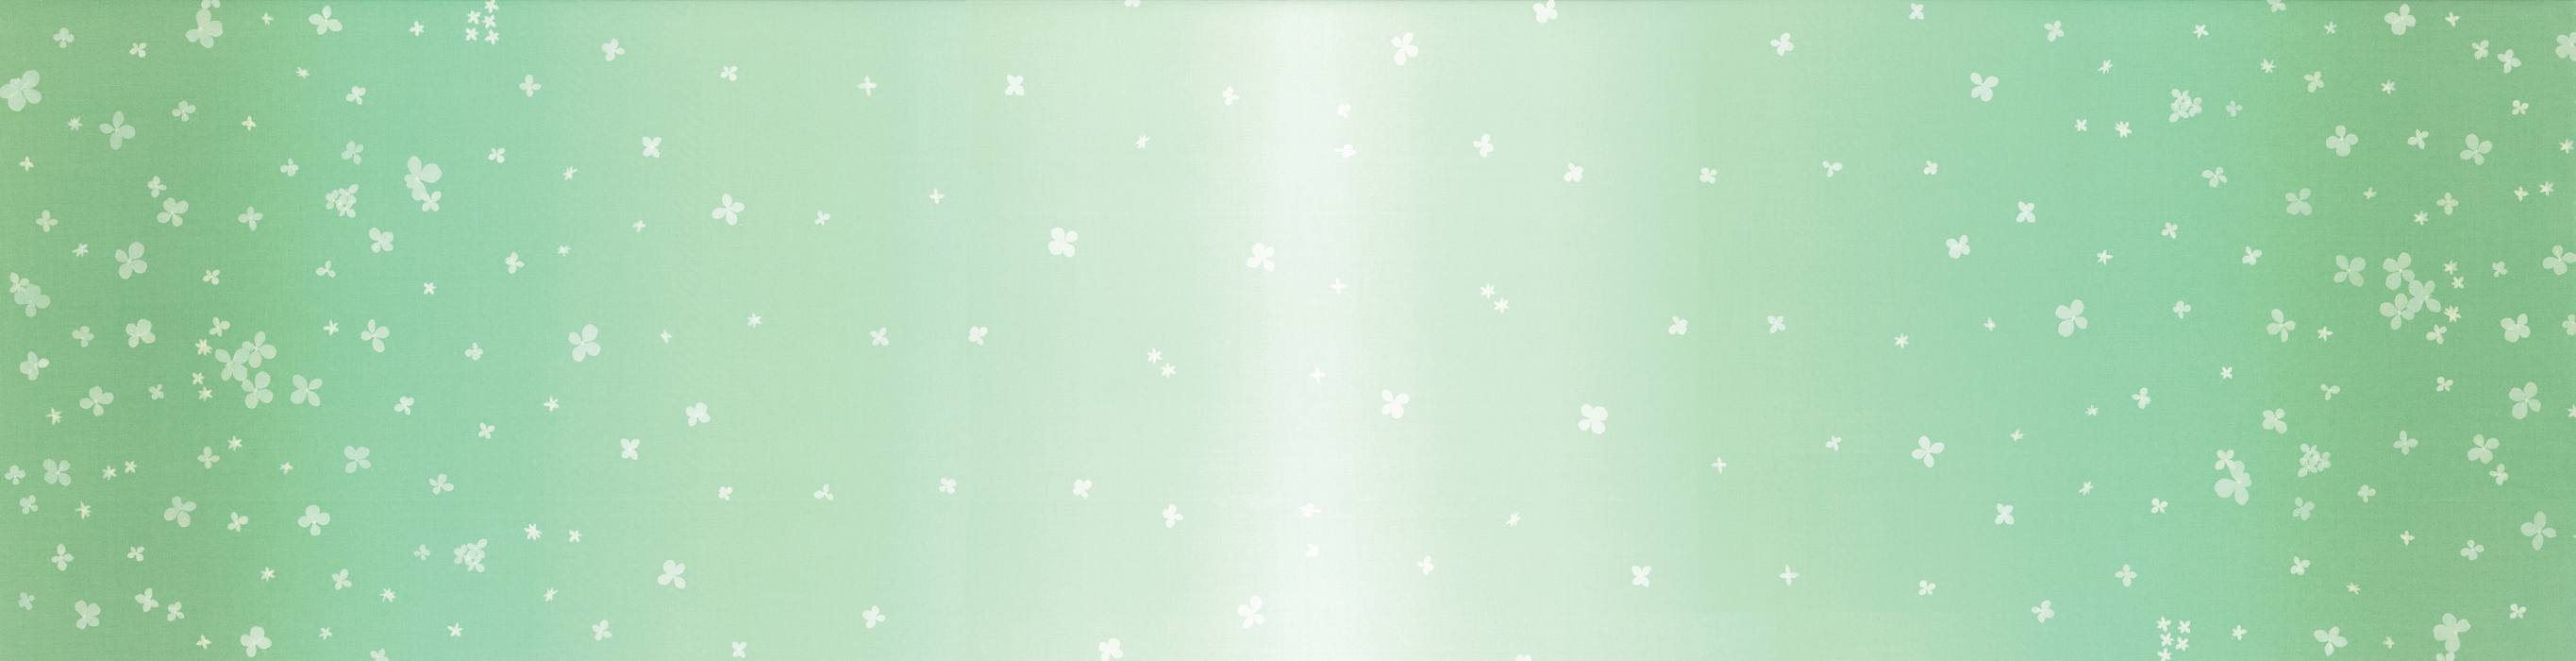 510870-210 Ombre Bloom Mint